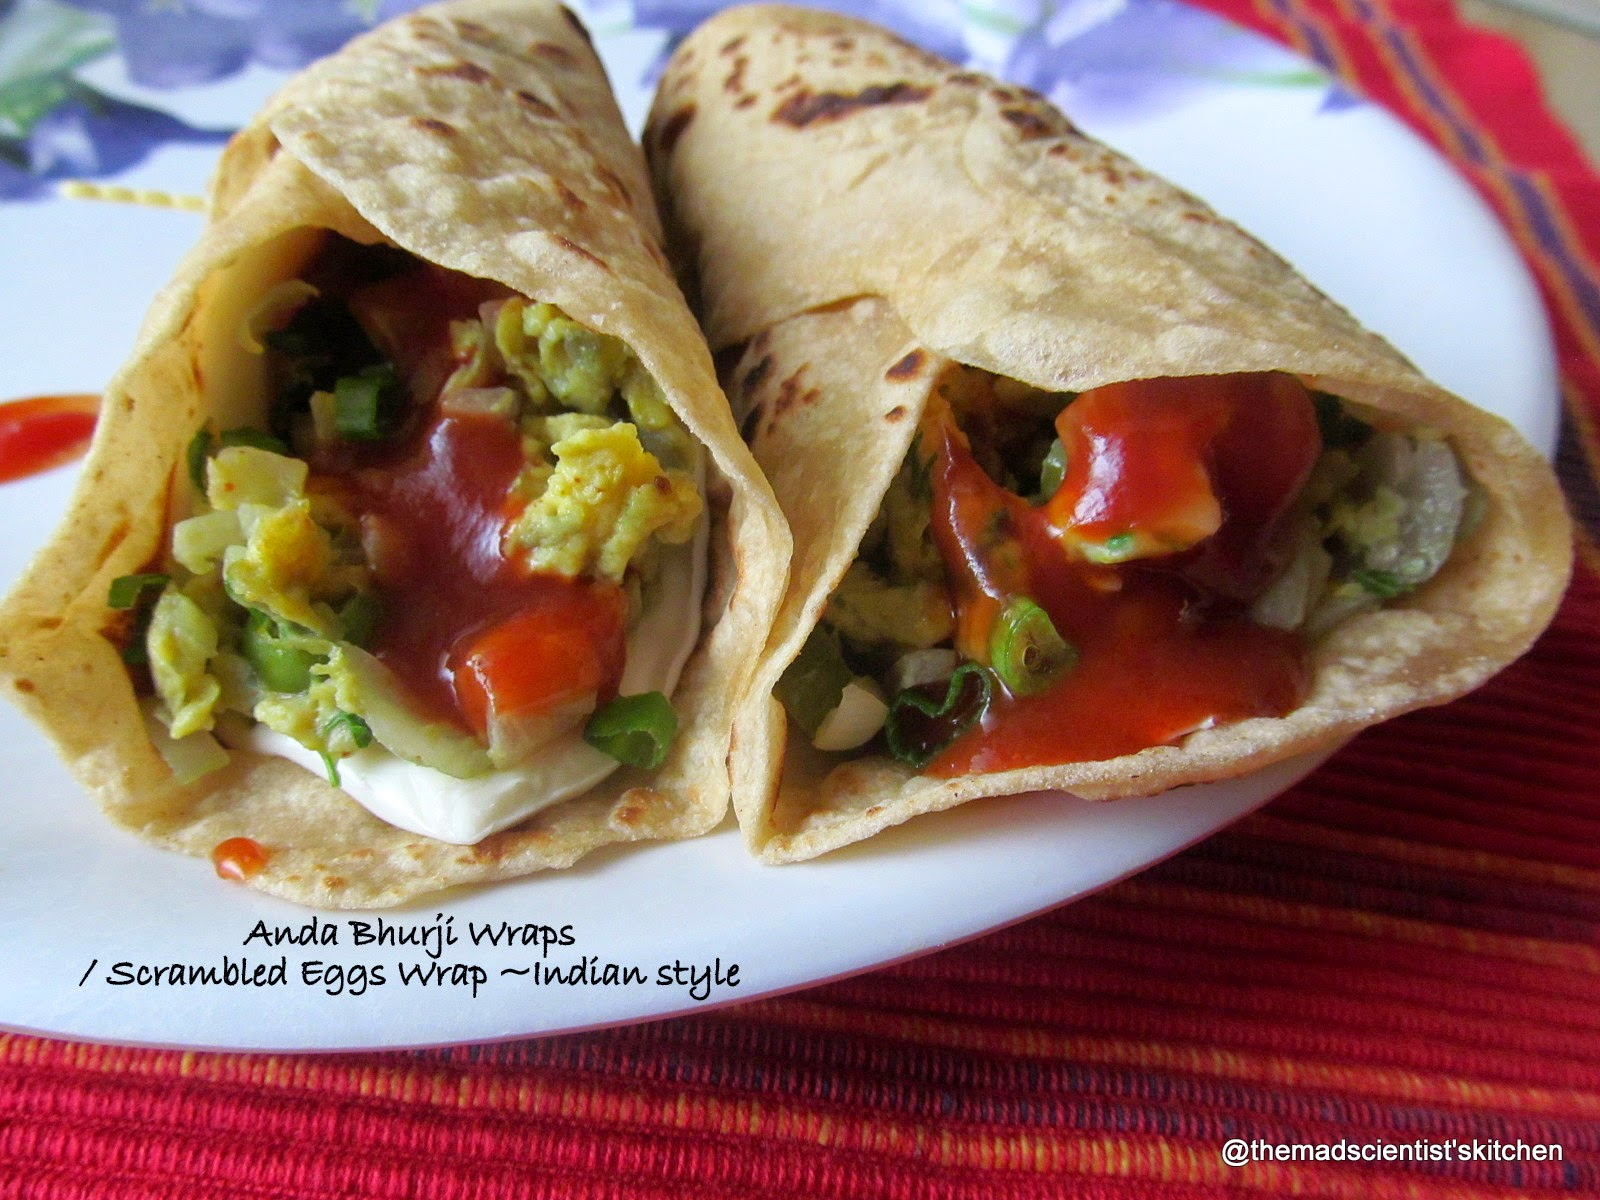 Anda Bhurji Wraps/ Scrambled Eggs Wrap ~Indian style